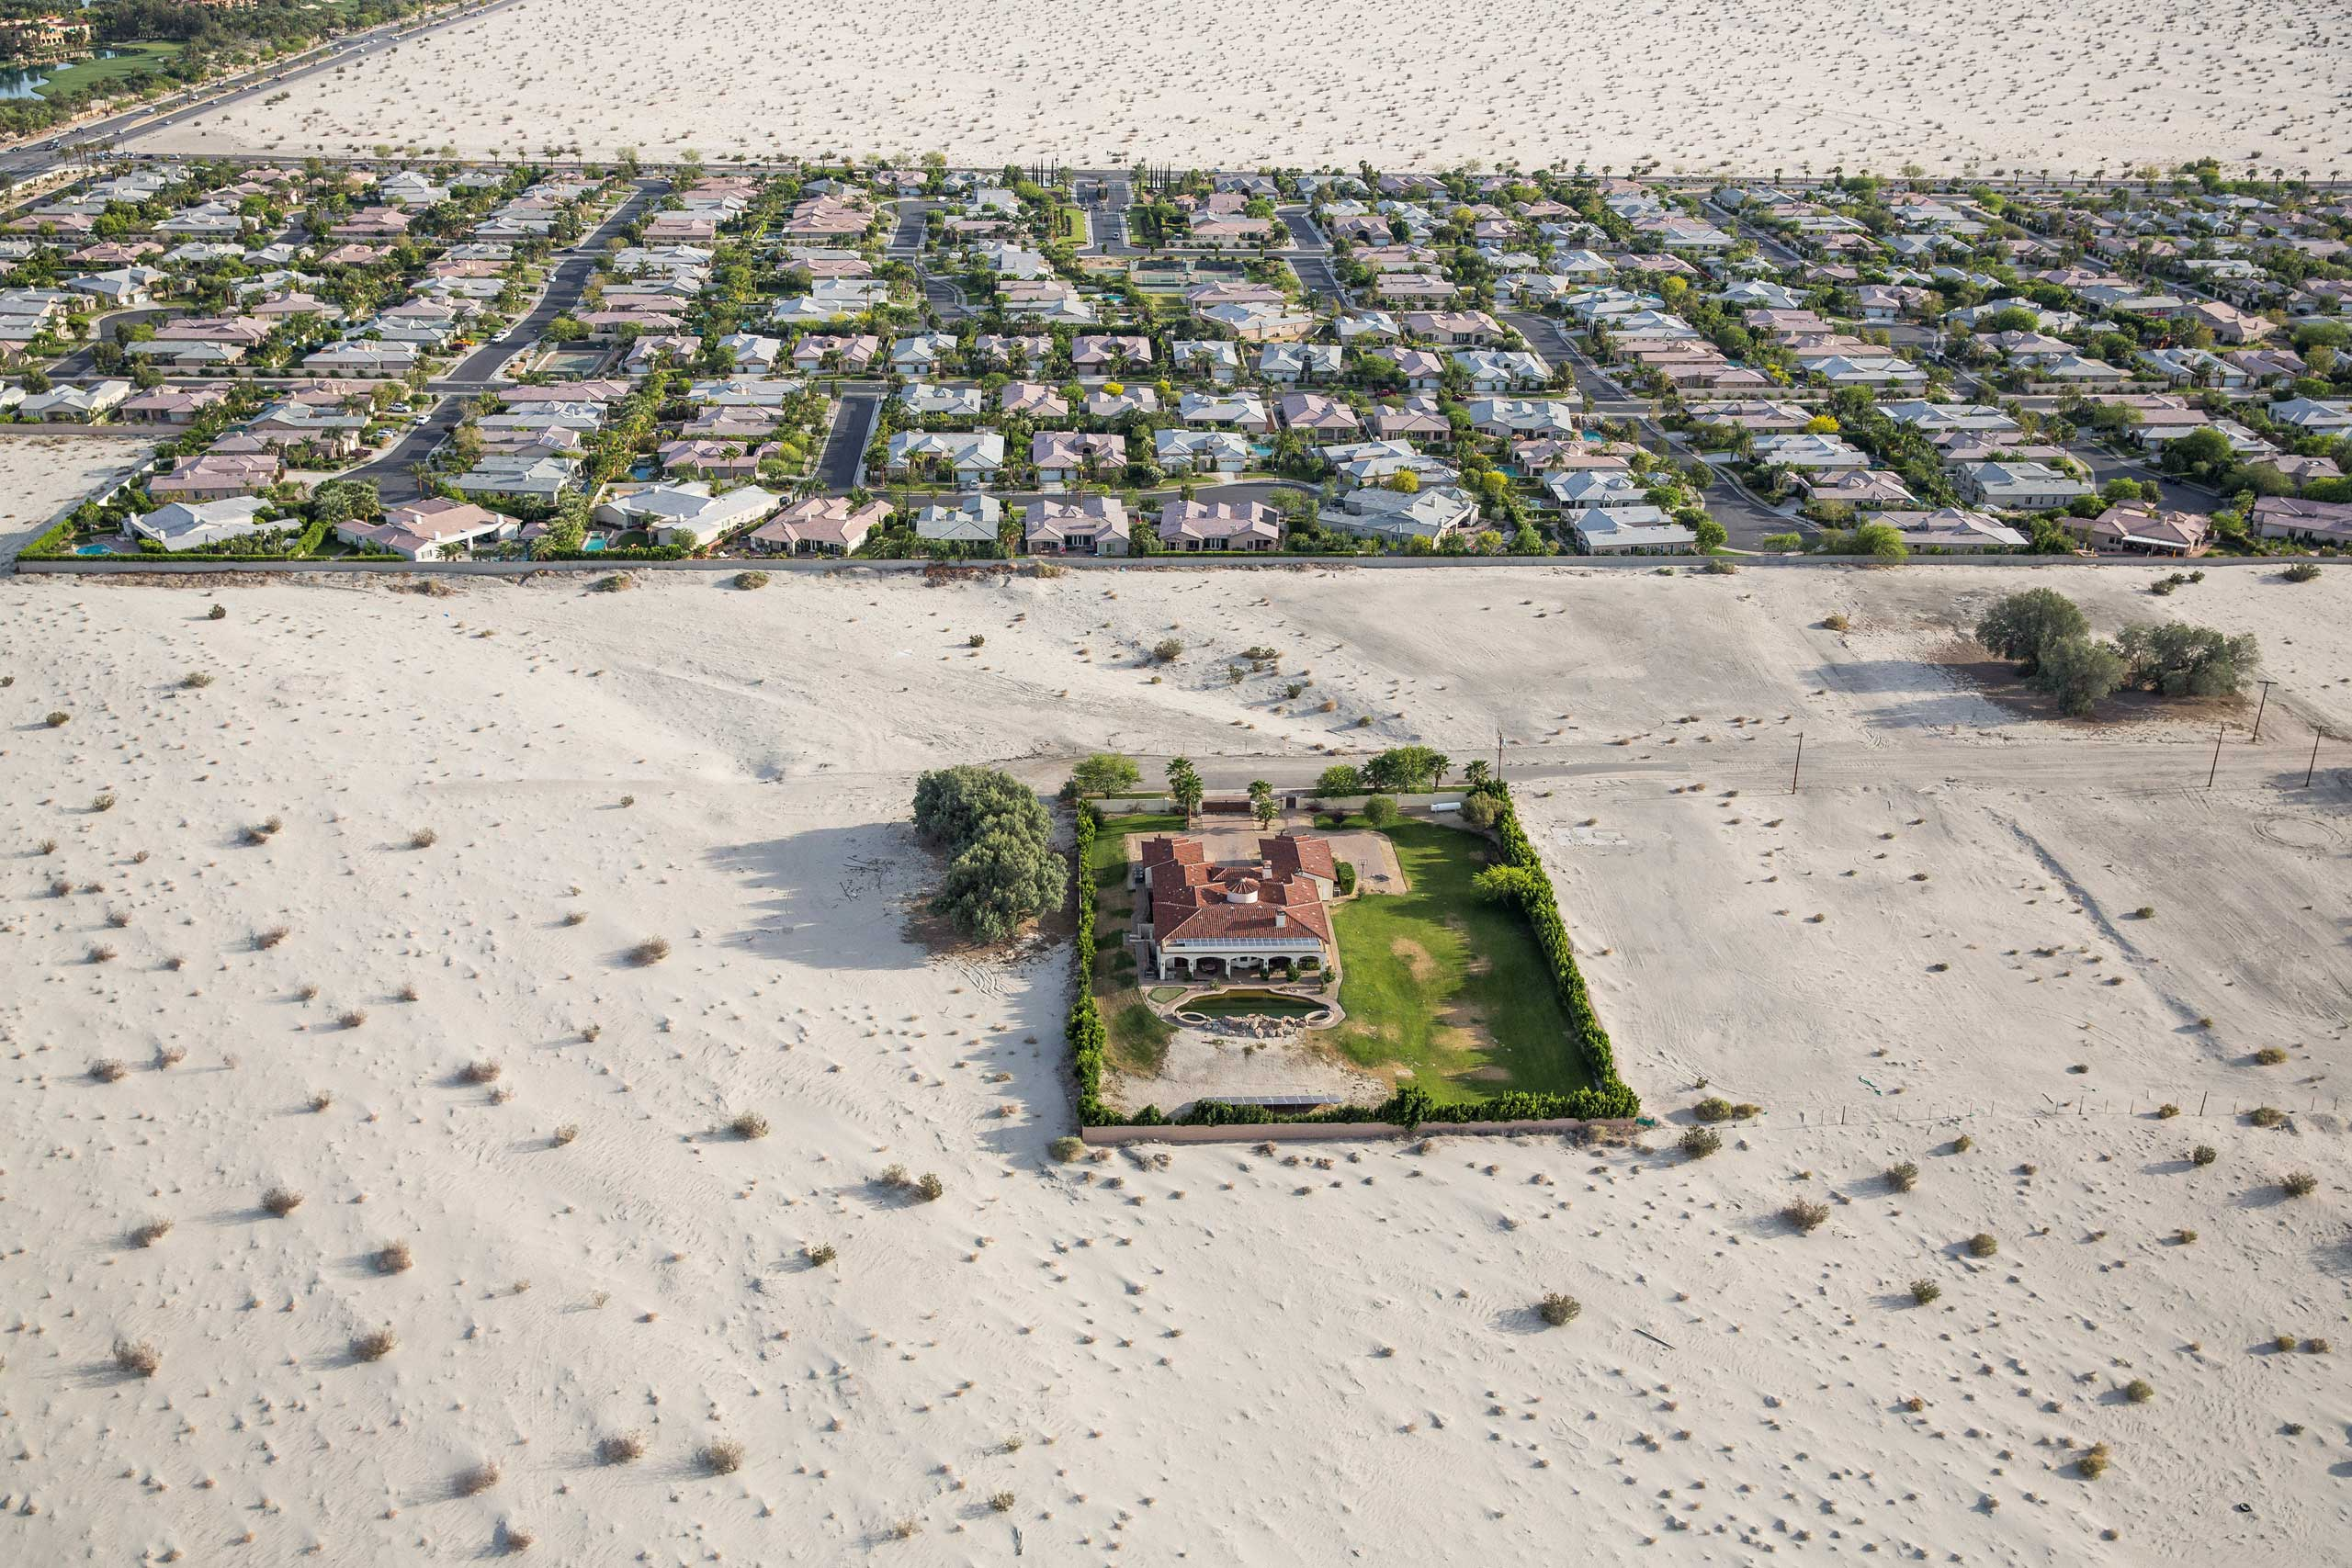 Properties surrounded by desert in Rancho Mirage, Calif. The state's history as a frontier of prosperity and glamour faces an uncertain future as the fourth year of severe water shortages has prompted Gov. Jerry Brown to mandate a 25 percent reduction in non-agricultural water use. April 3, 2015.